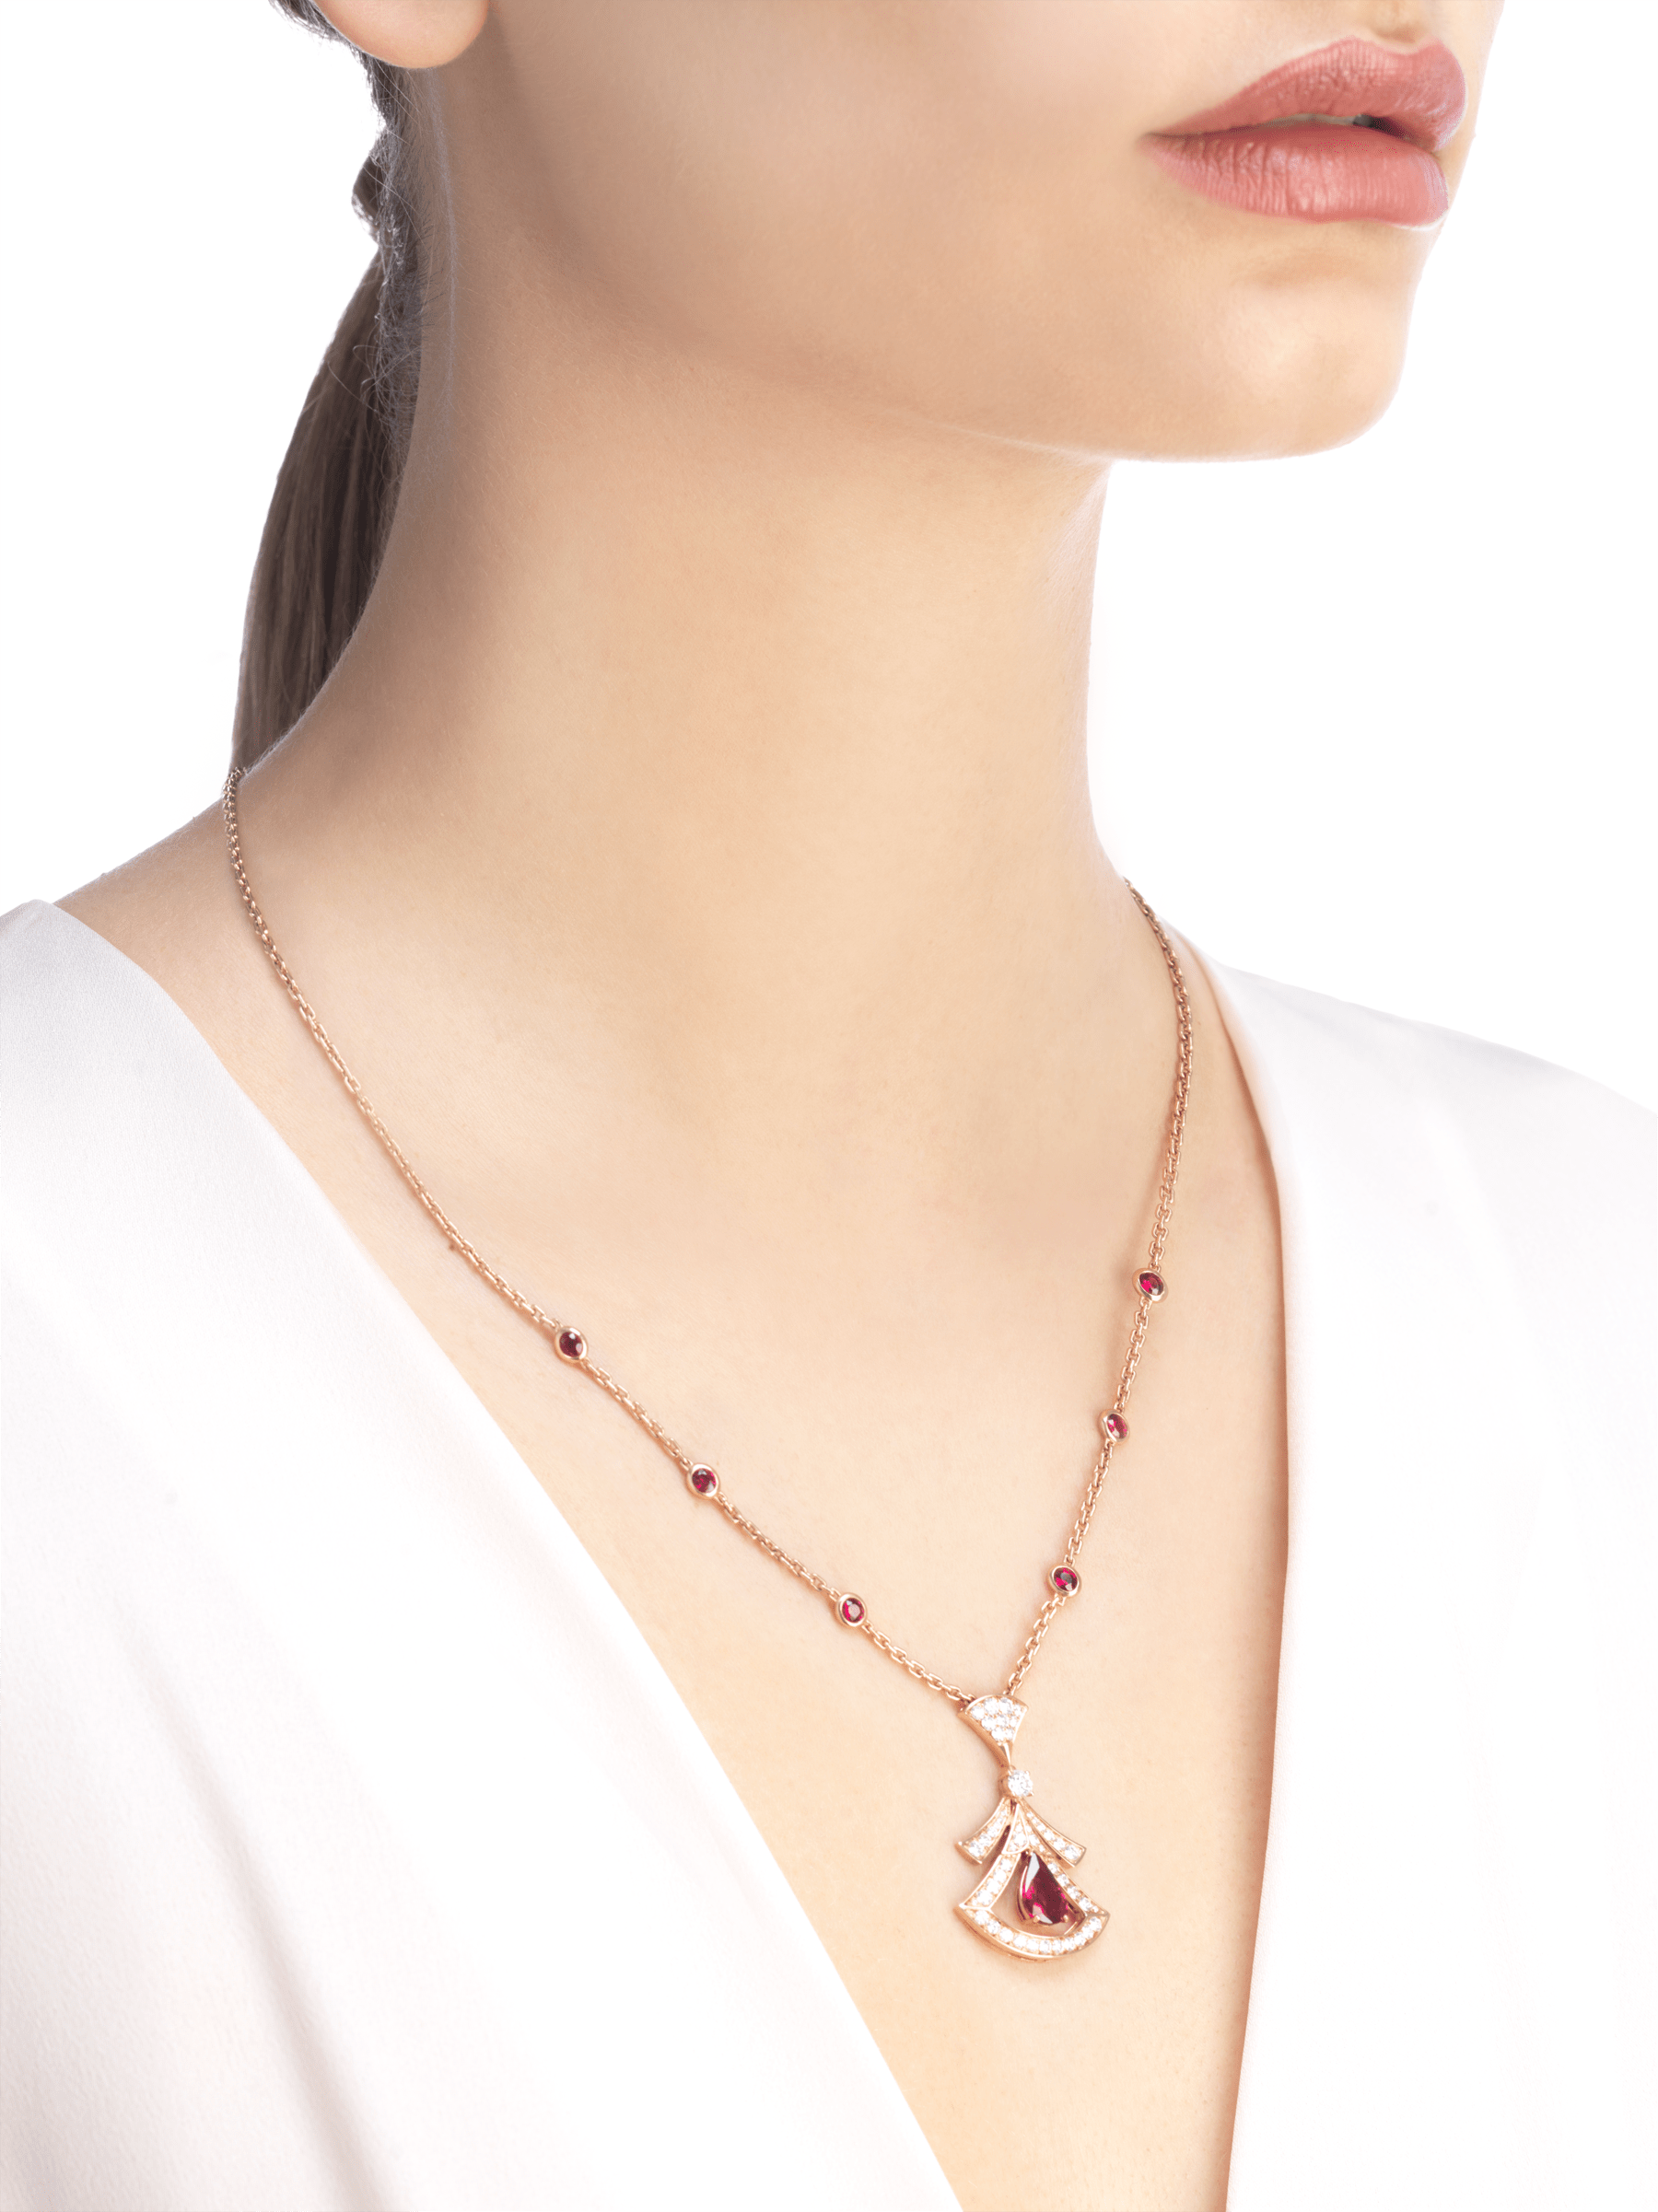 DIVAS' DREAM 18 kt rose gold openwork necklace set with a pear-shaped ruby, round brilliant-cut rubies, a round brilliant-cut diamond and pavé diamonds. 356953 image 4